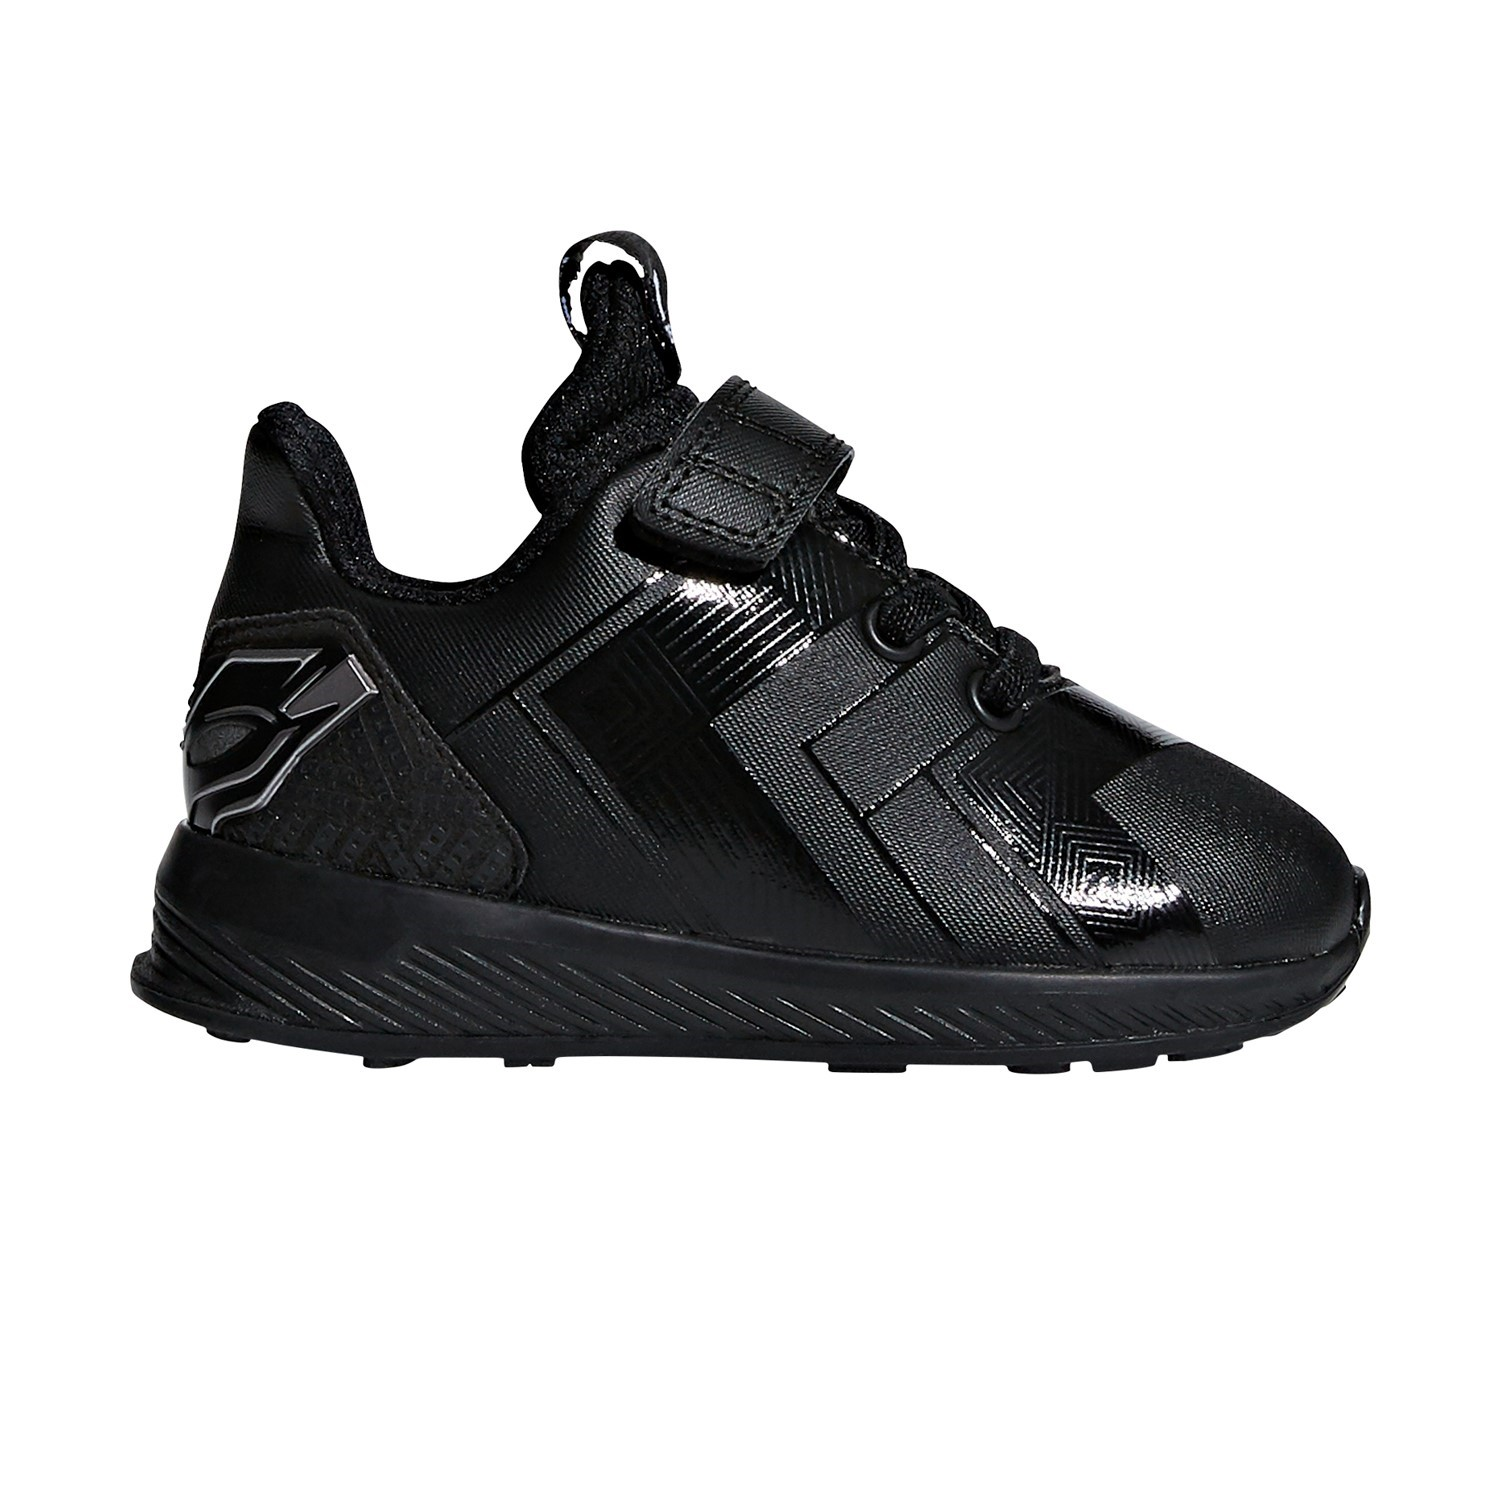 f8b47345b770 Adidas Avengers Black Panther RapidaRun - Toddler Boys Running Shoes - Black  Silver